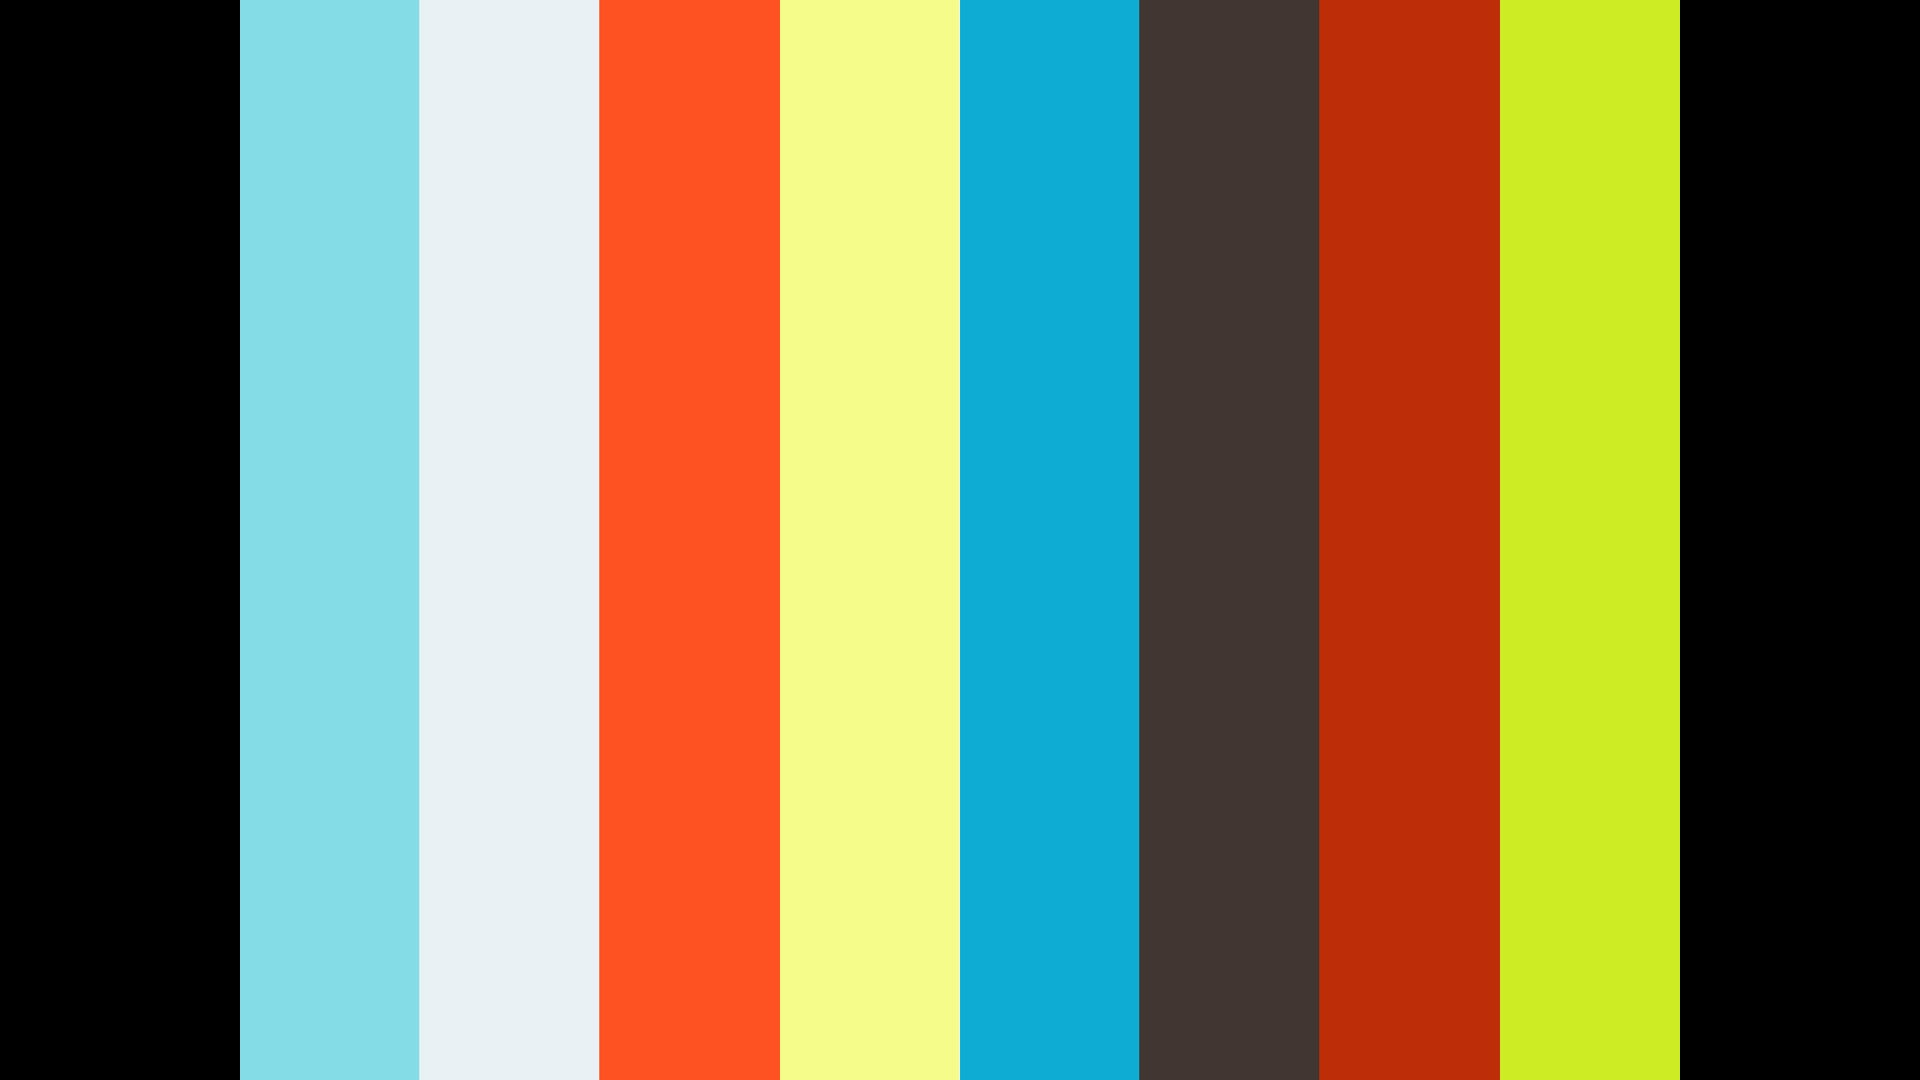 Bandit - The Rescue Dog